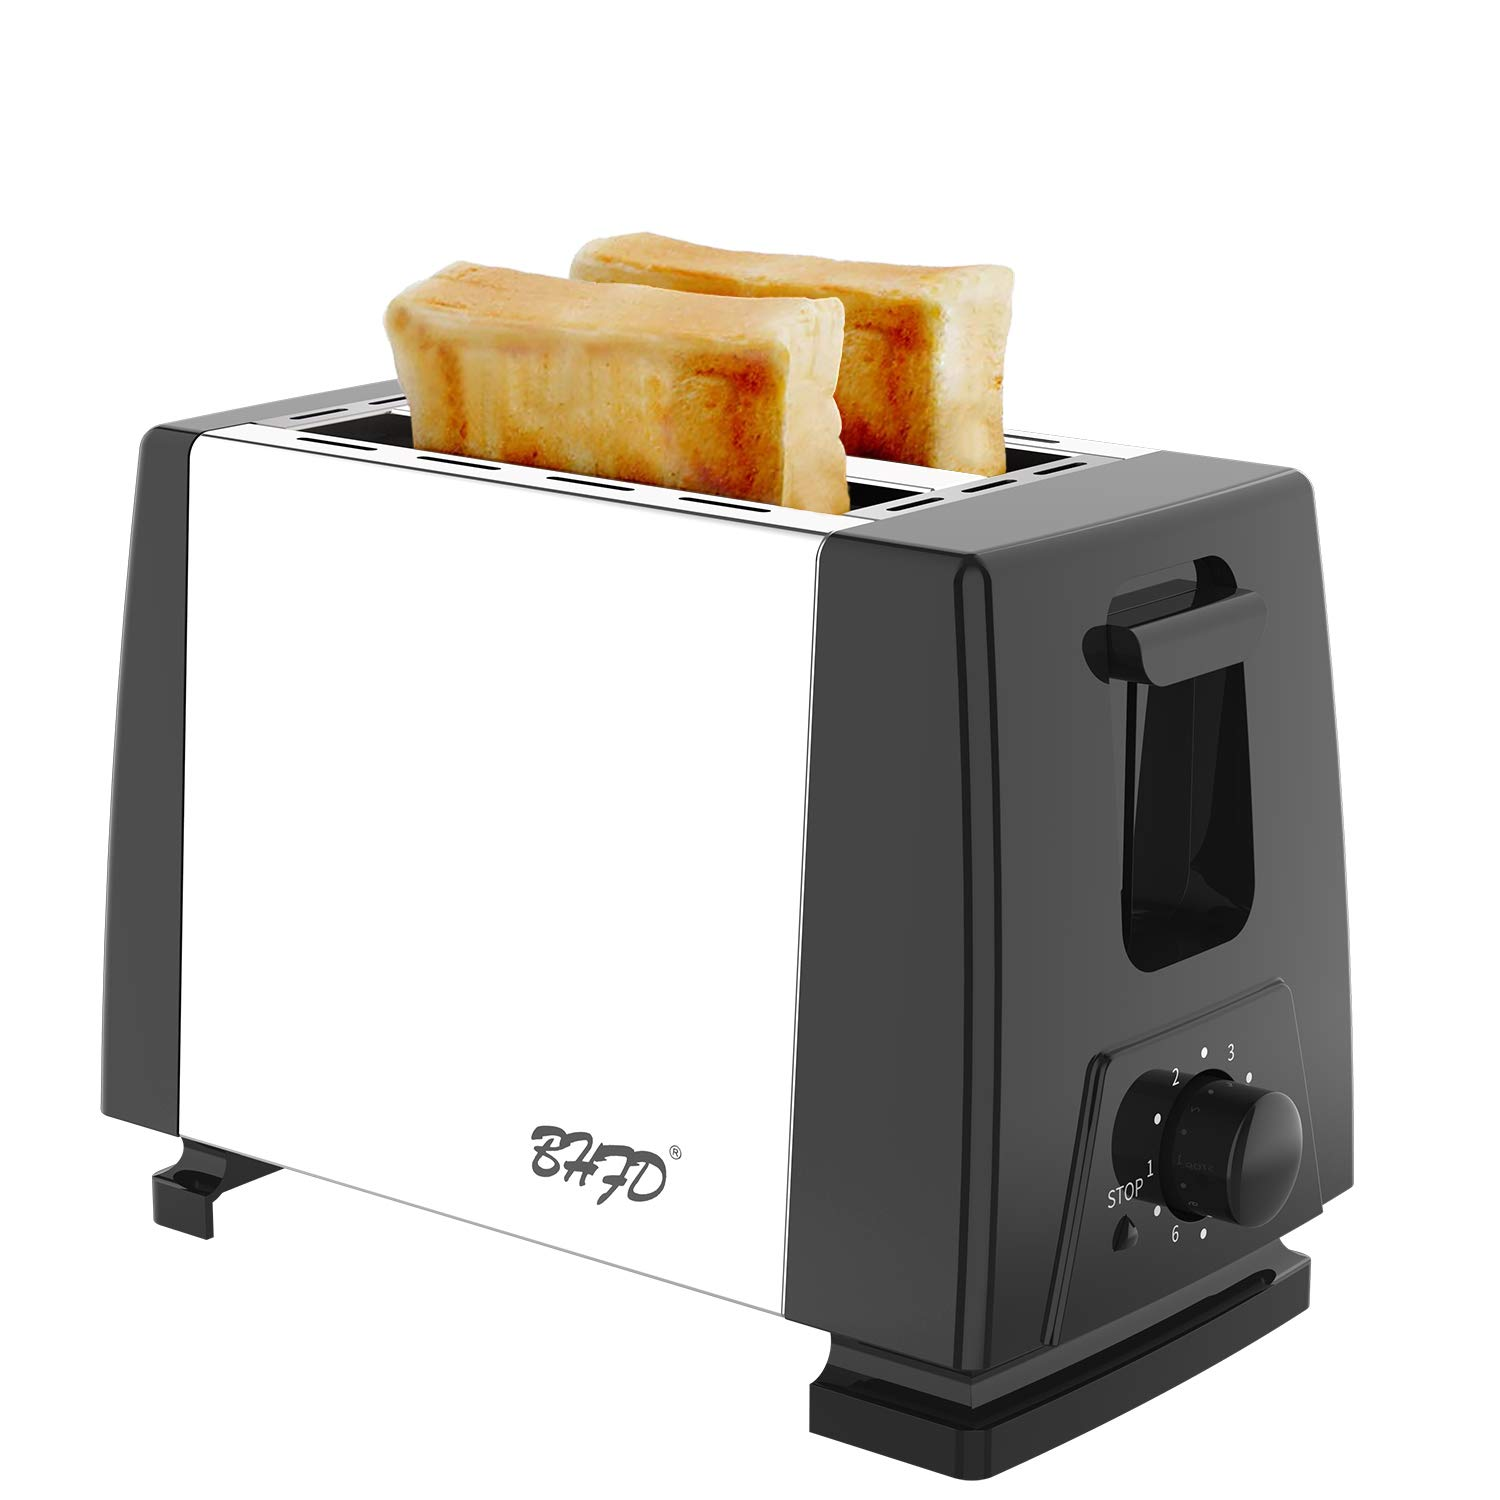 Yabano 4 Slice Toaster, Retro Bagel Toaster with 7 Bread Shade Settings and Warming Rack, 4 Extra Wide Slots, Defrost Bagel Cancel Function, Removable Crumb Tray, Stainless Steel Toaster, Silver